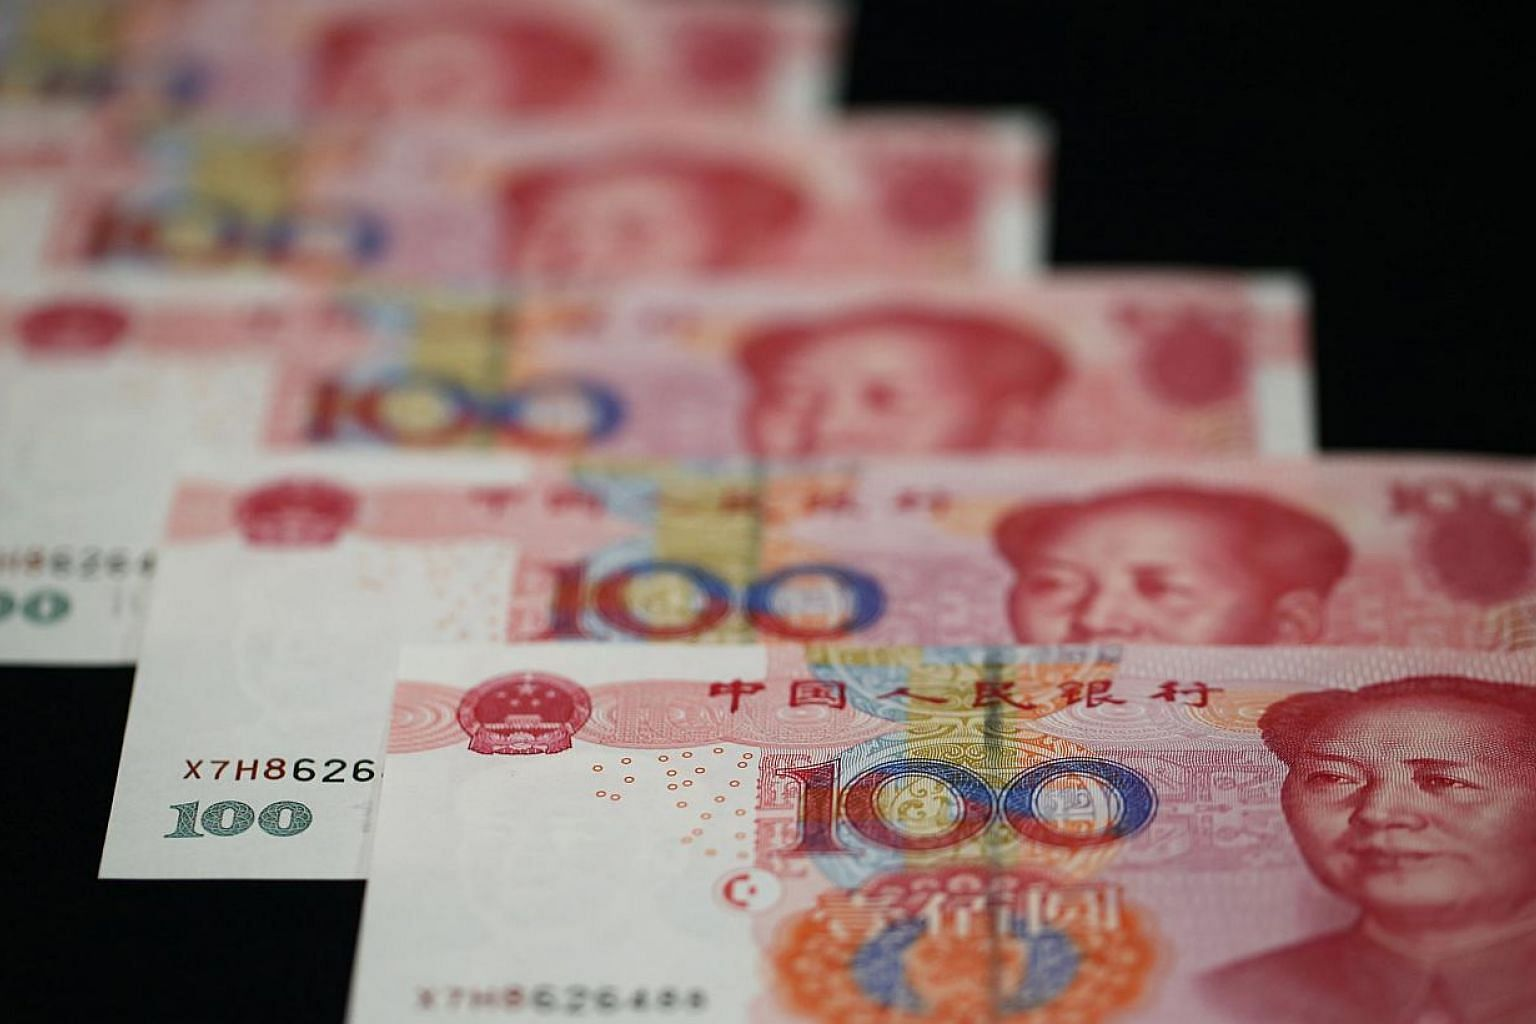 China's yuan inched up against the dollar on Tuesday, after the central bank set the official guidance rate higher. -- PHOTO: BLOOMBERG